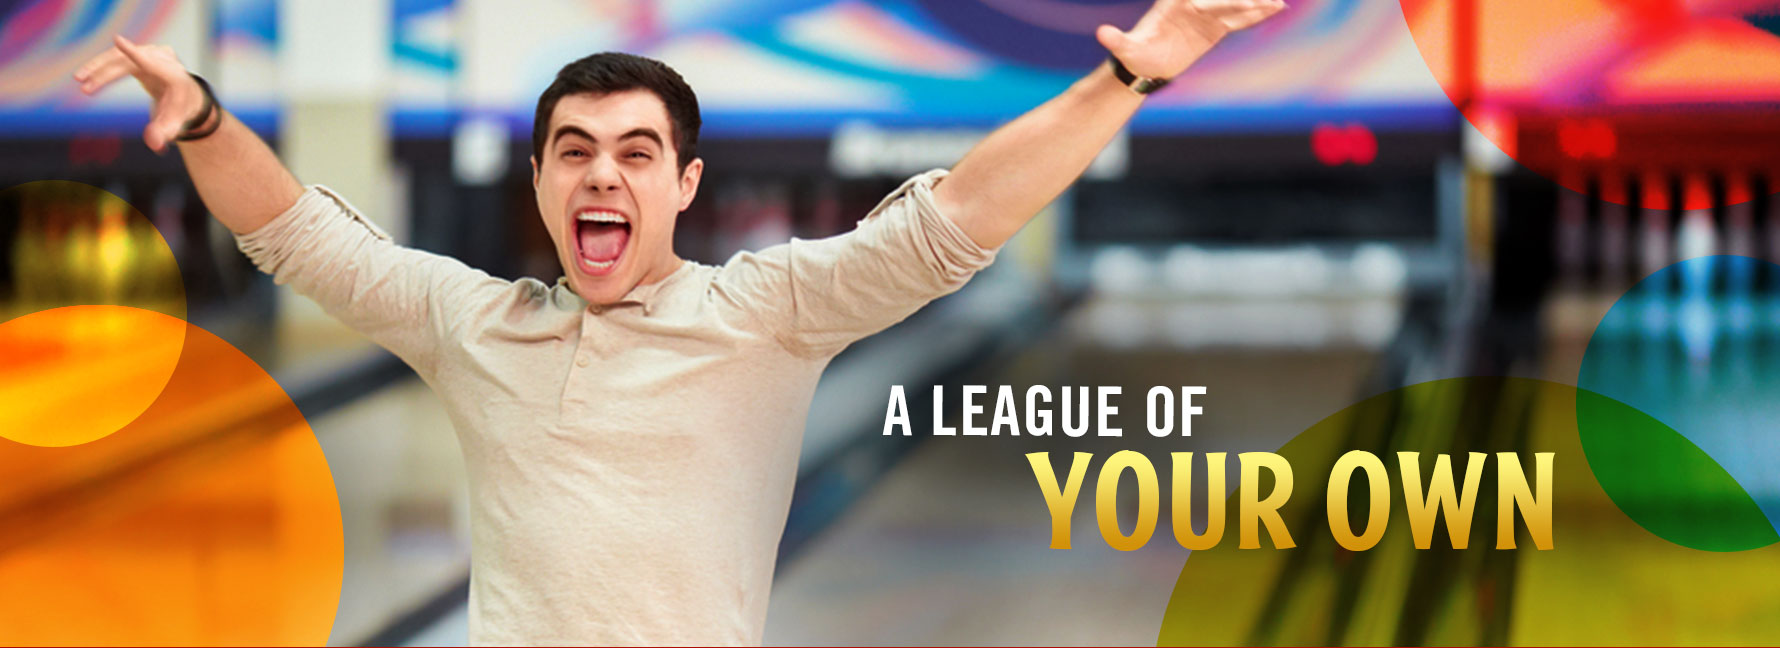 Leagues of Your Own